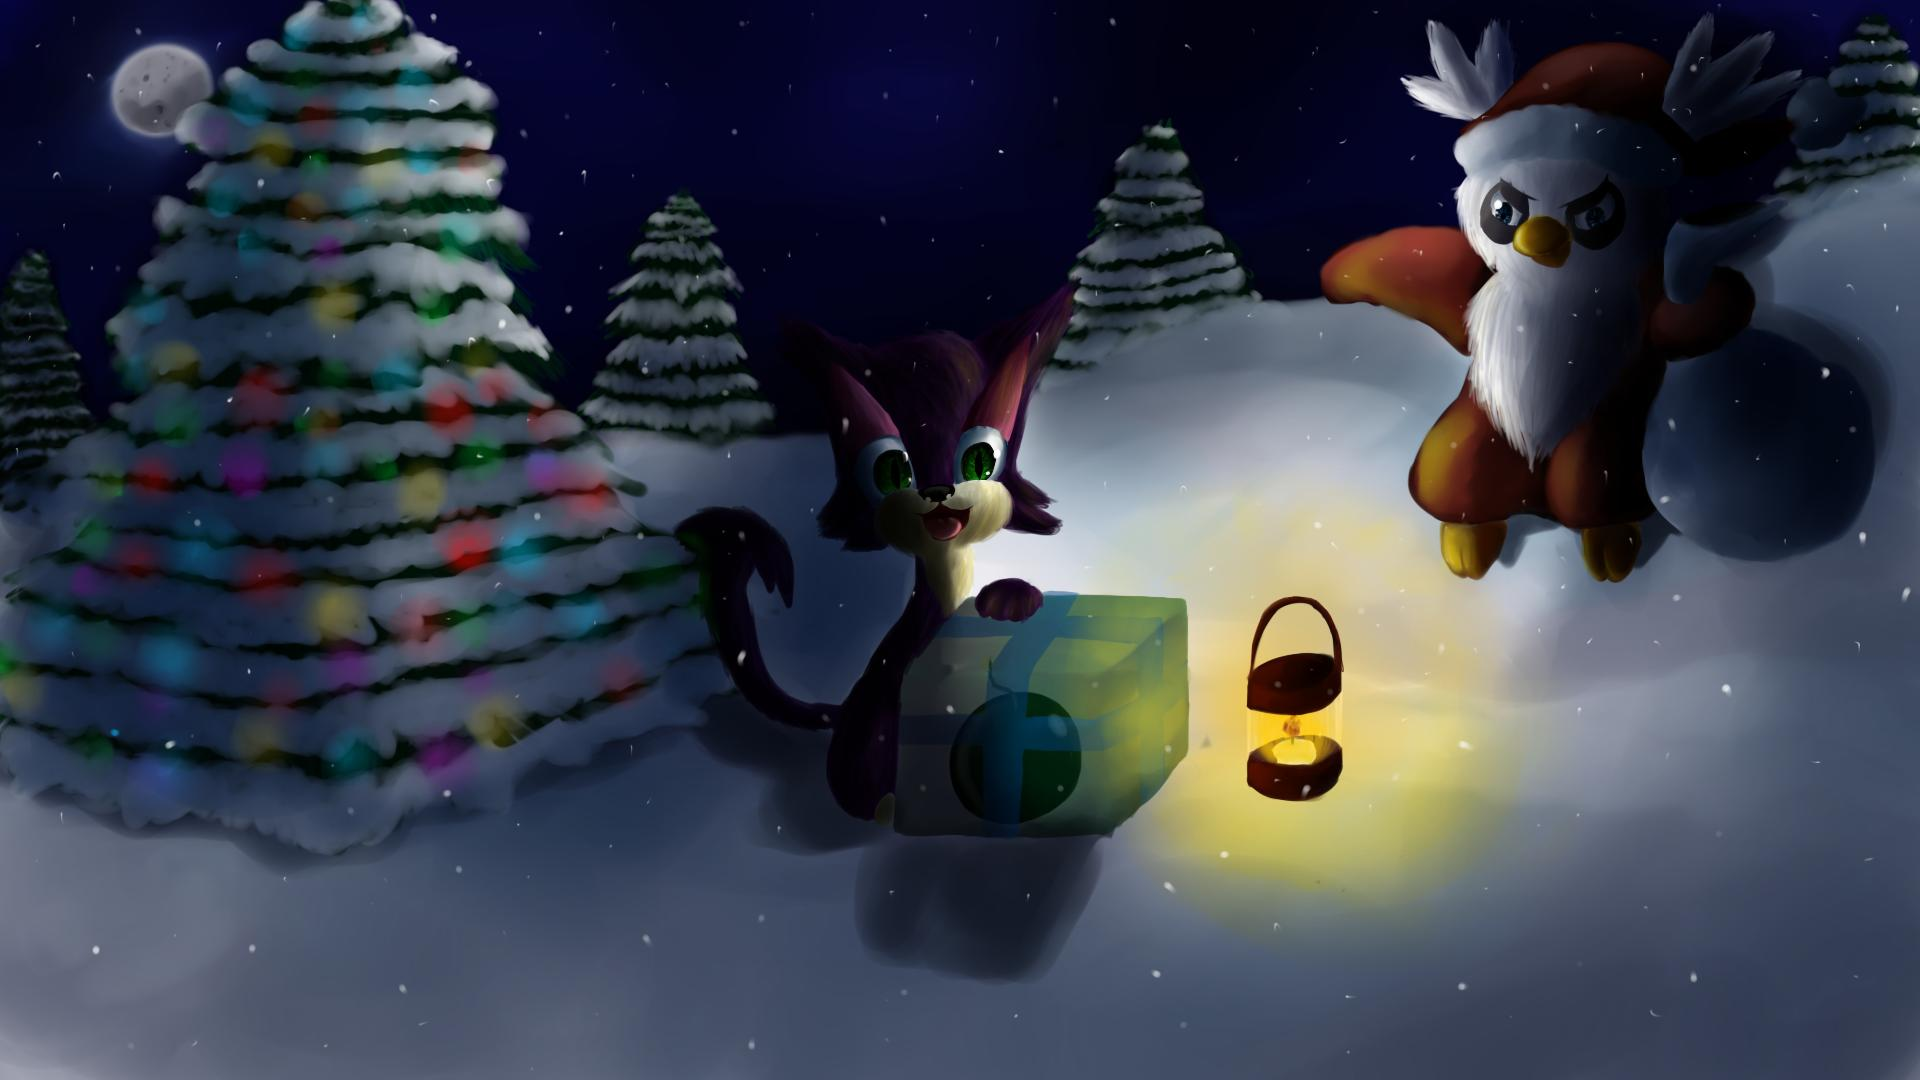 Pokemon Christmas Wallpapers - Wallpaper Cave